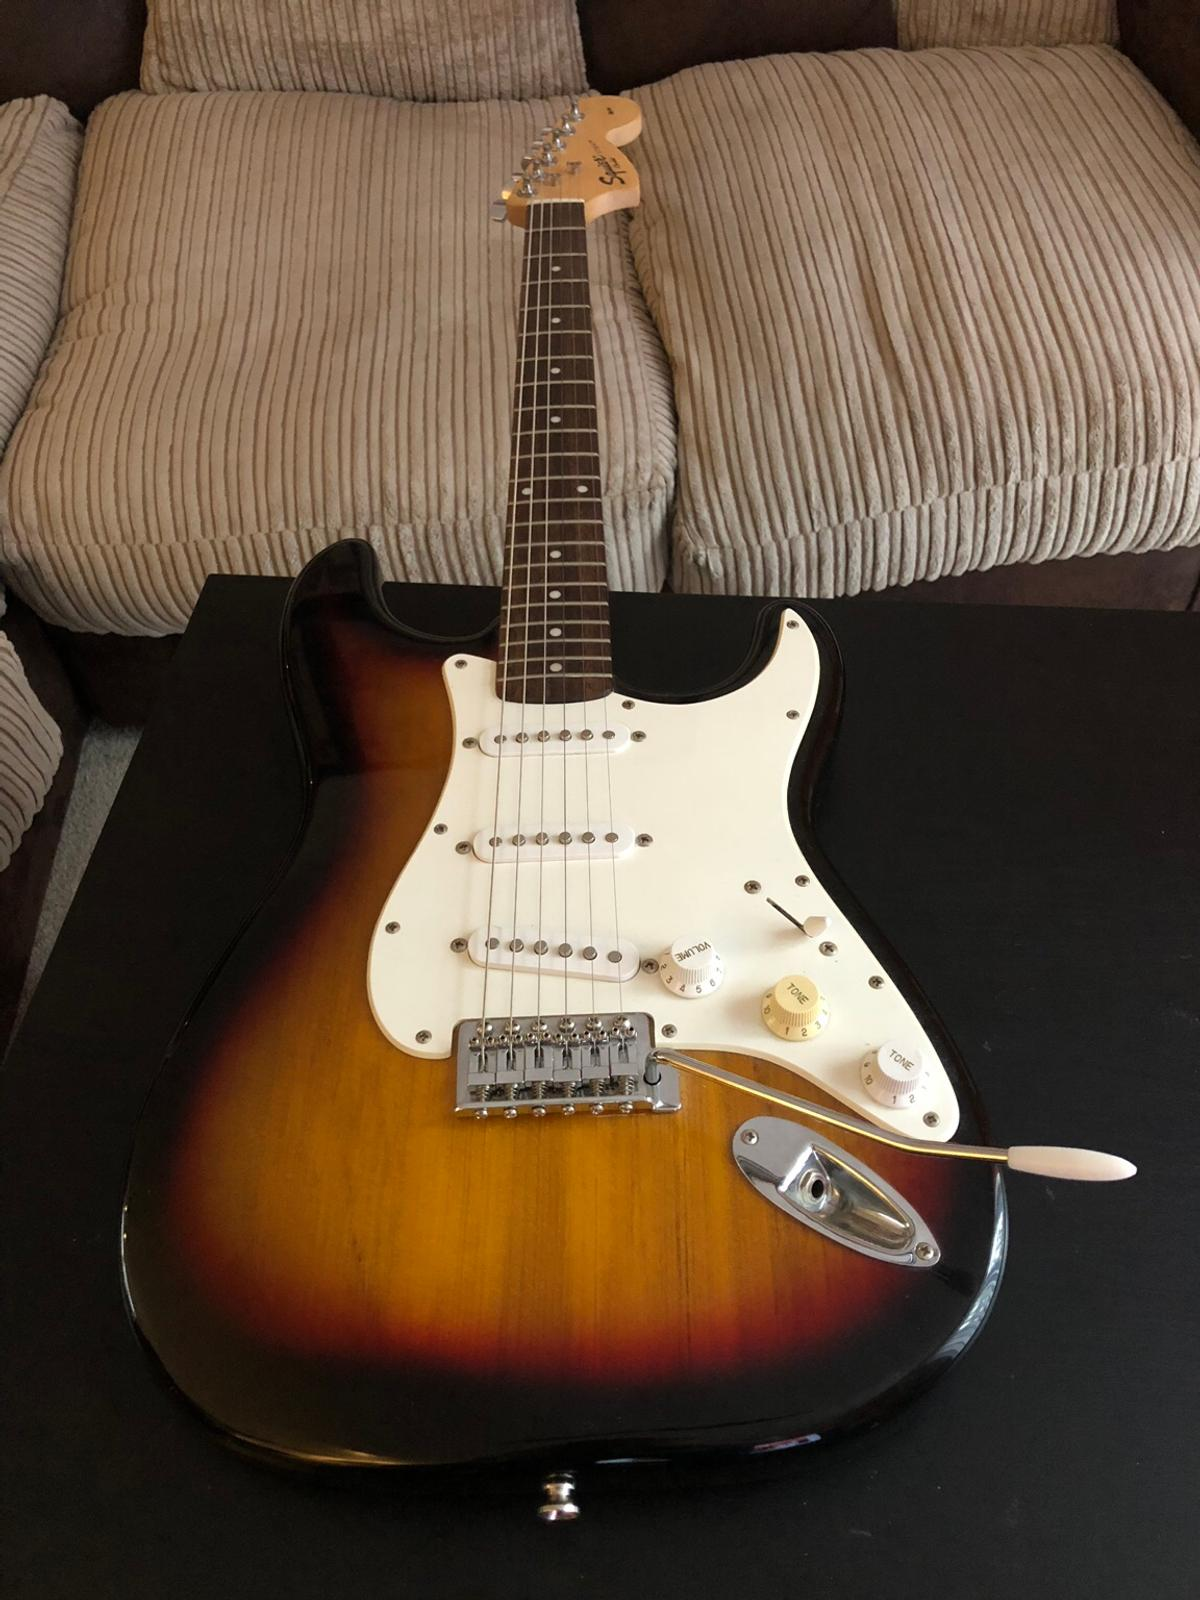 Fender Squier Strat Affinity OFFER in B37 Solihull for free